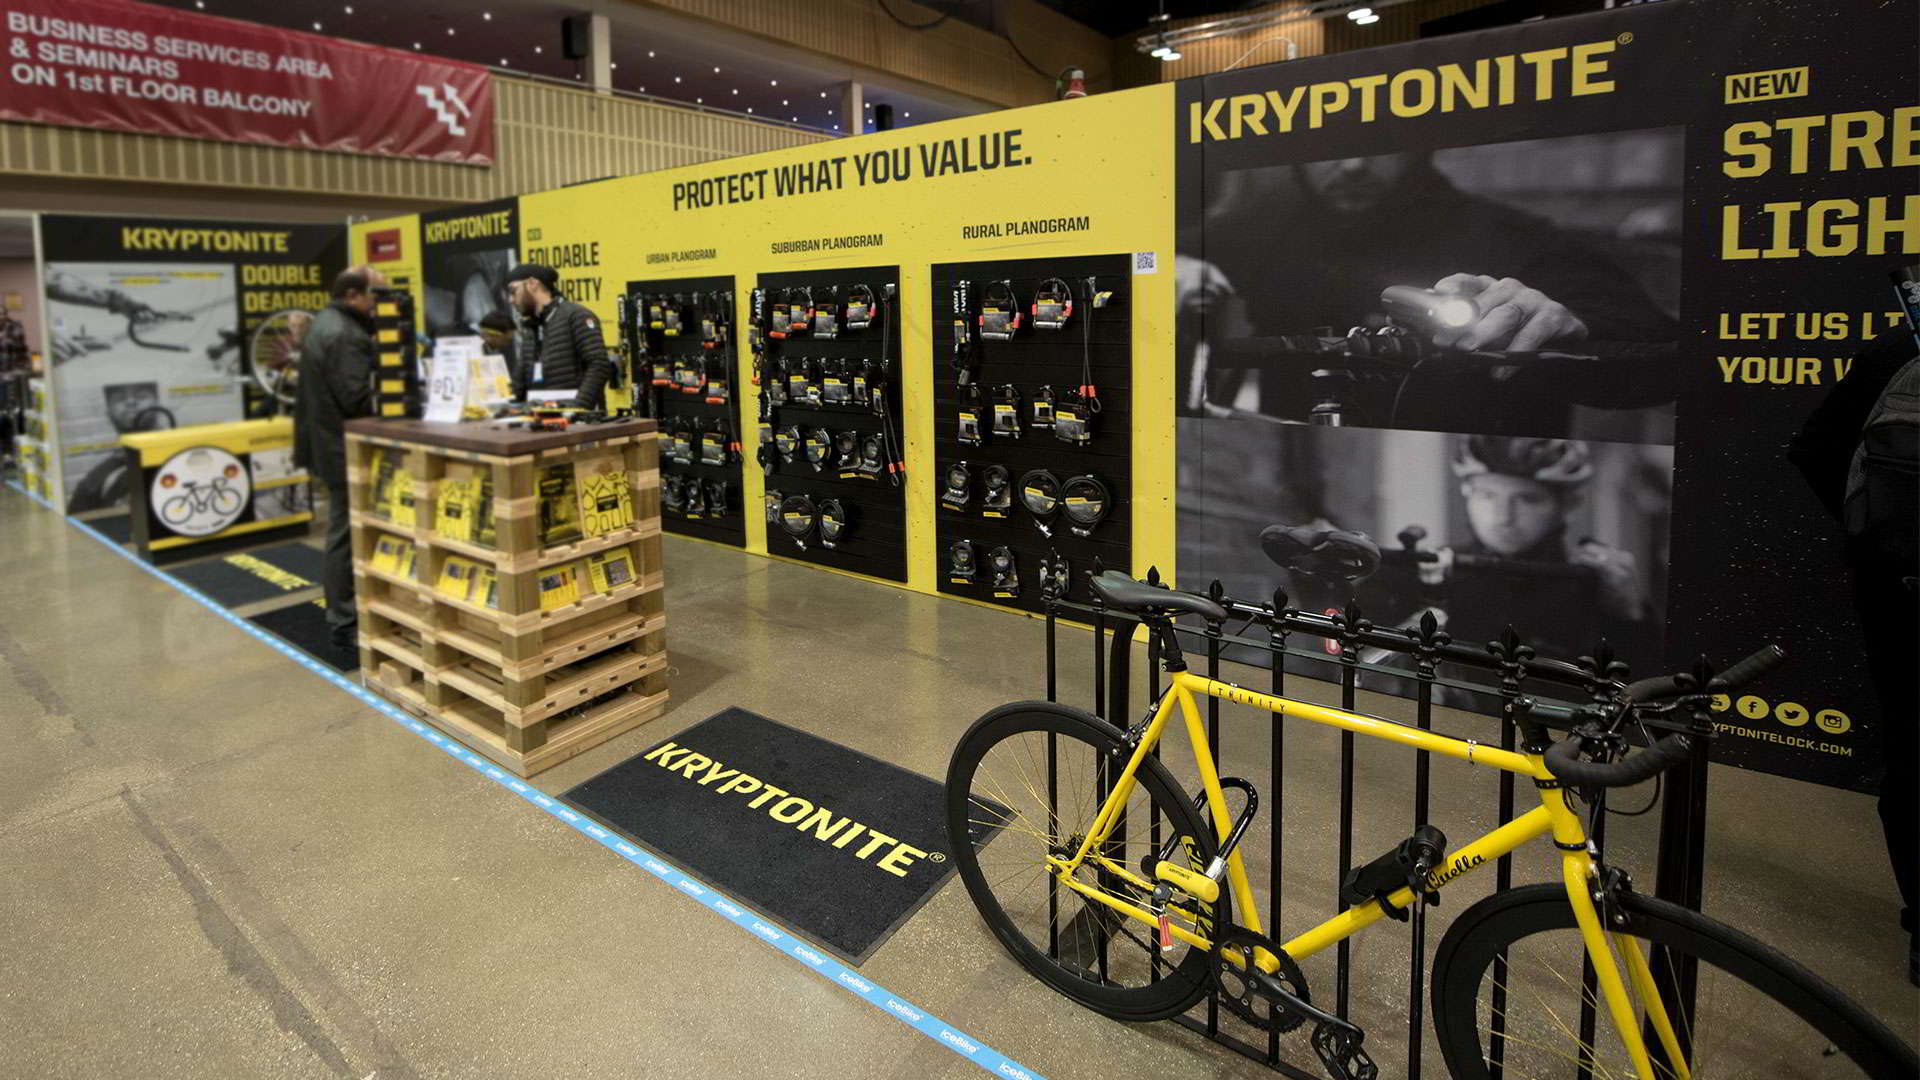 IceBike UK - Kriptonite Stand